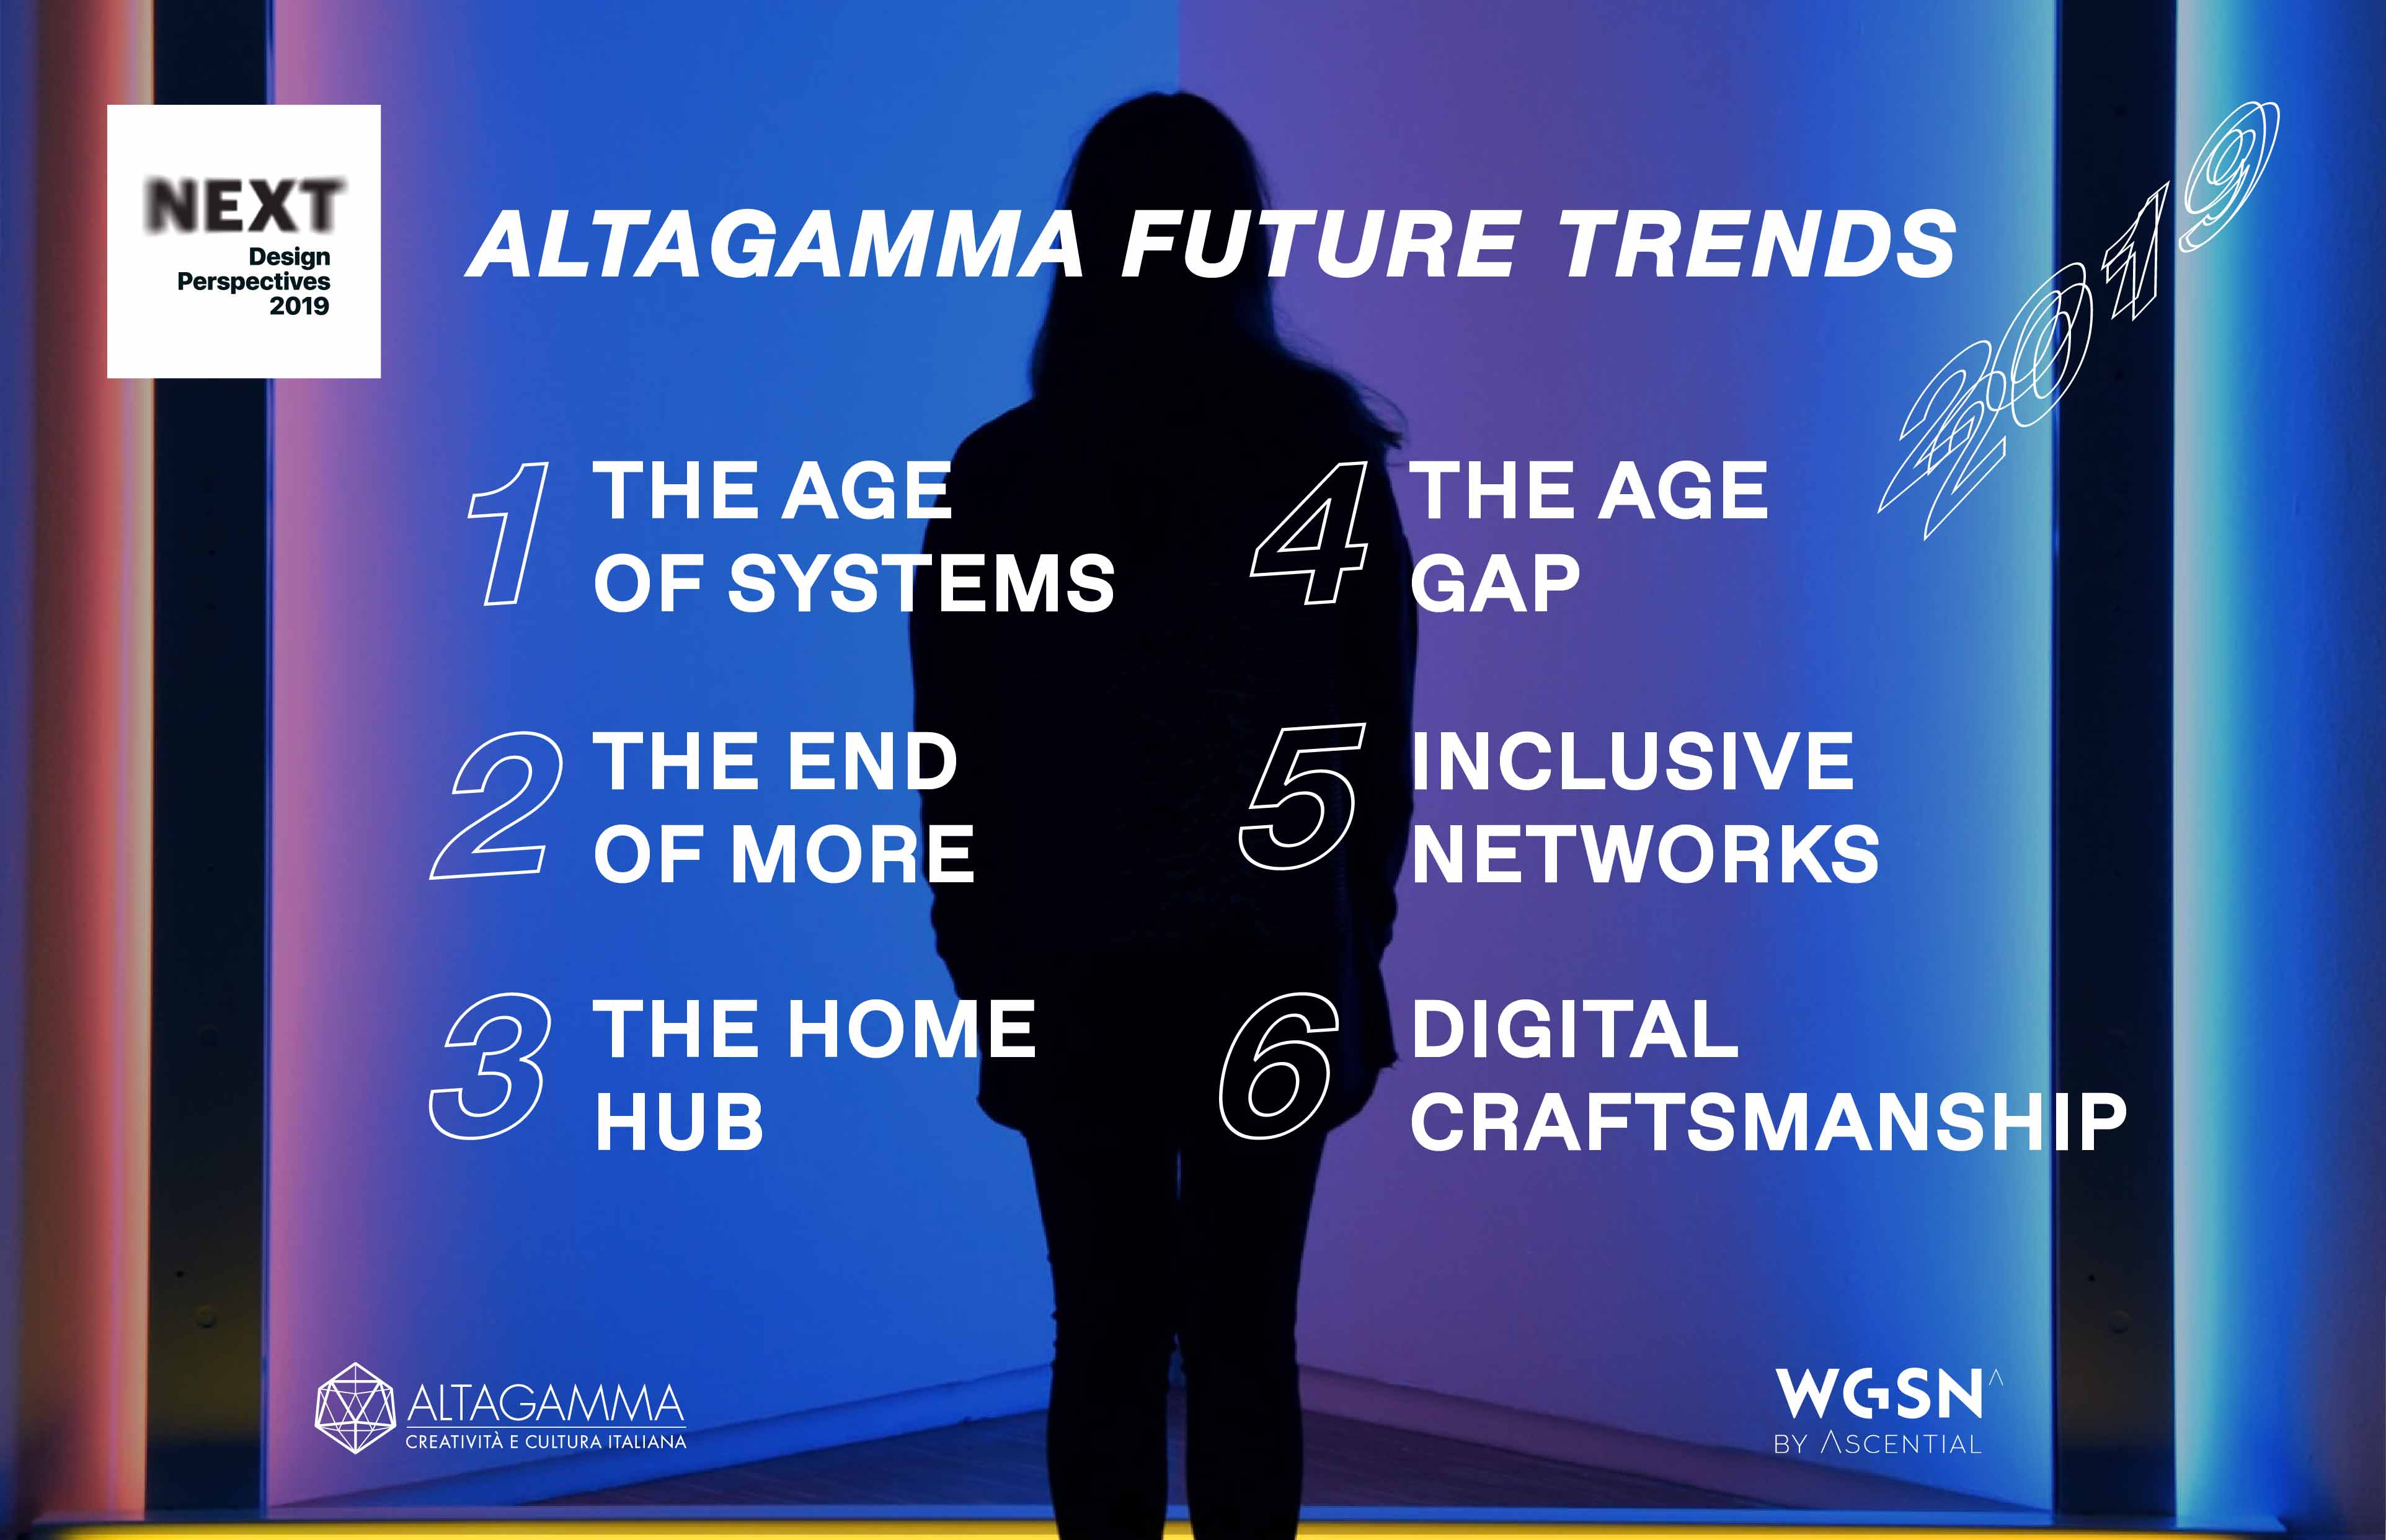 Altagamma's future trends developed by WGSN.